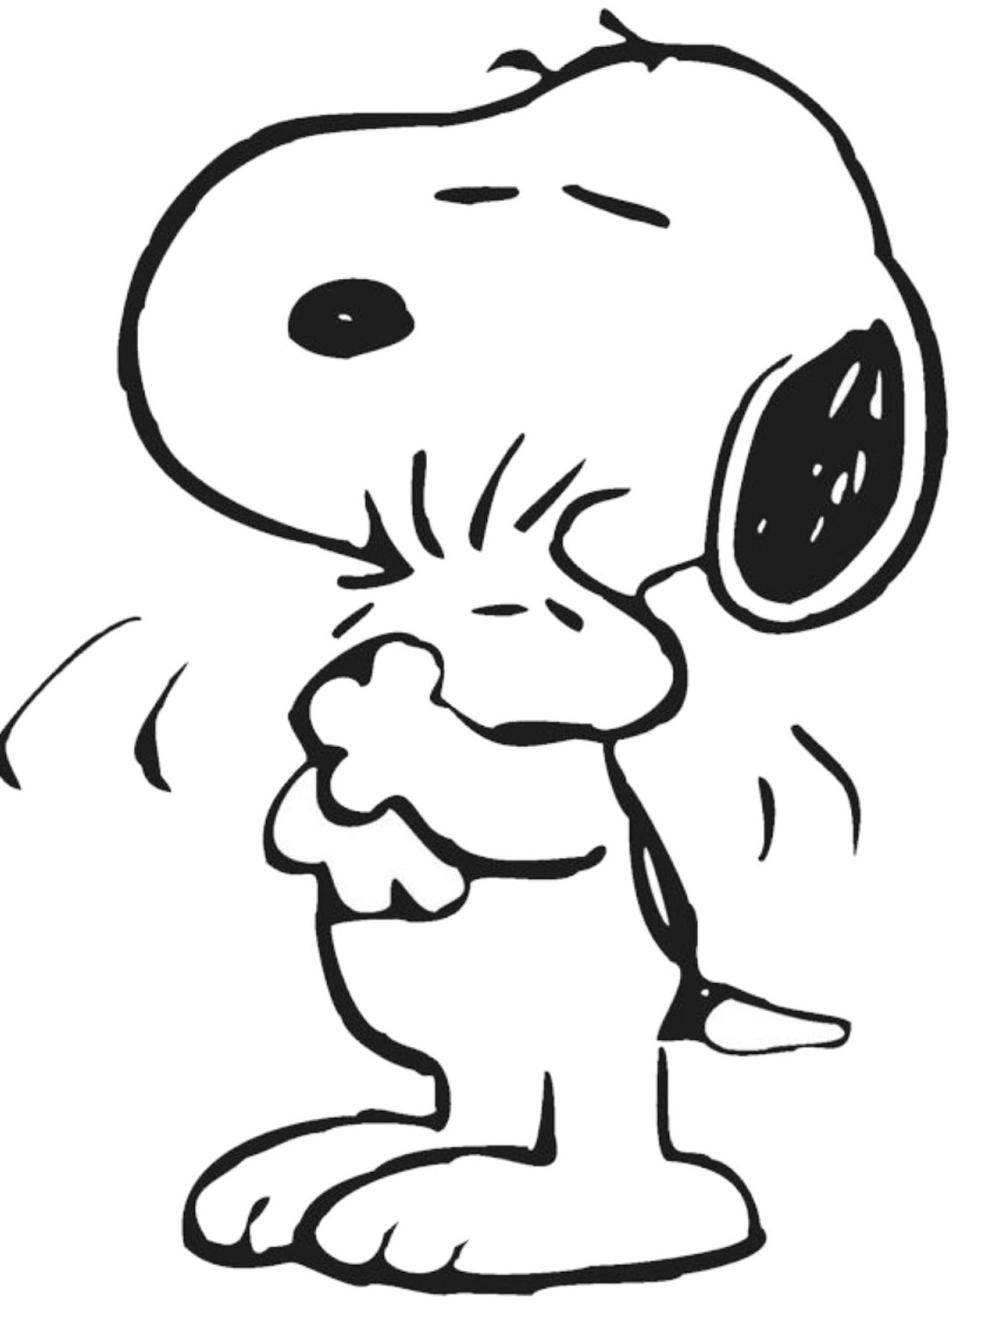 Snoopy And Woodstock Coloring Pages Woodstock Snoopy Coloring Pages Coloring Home